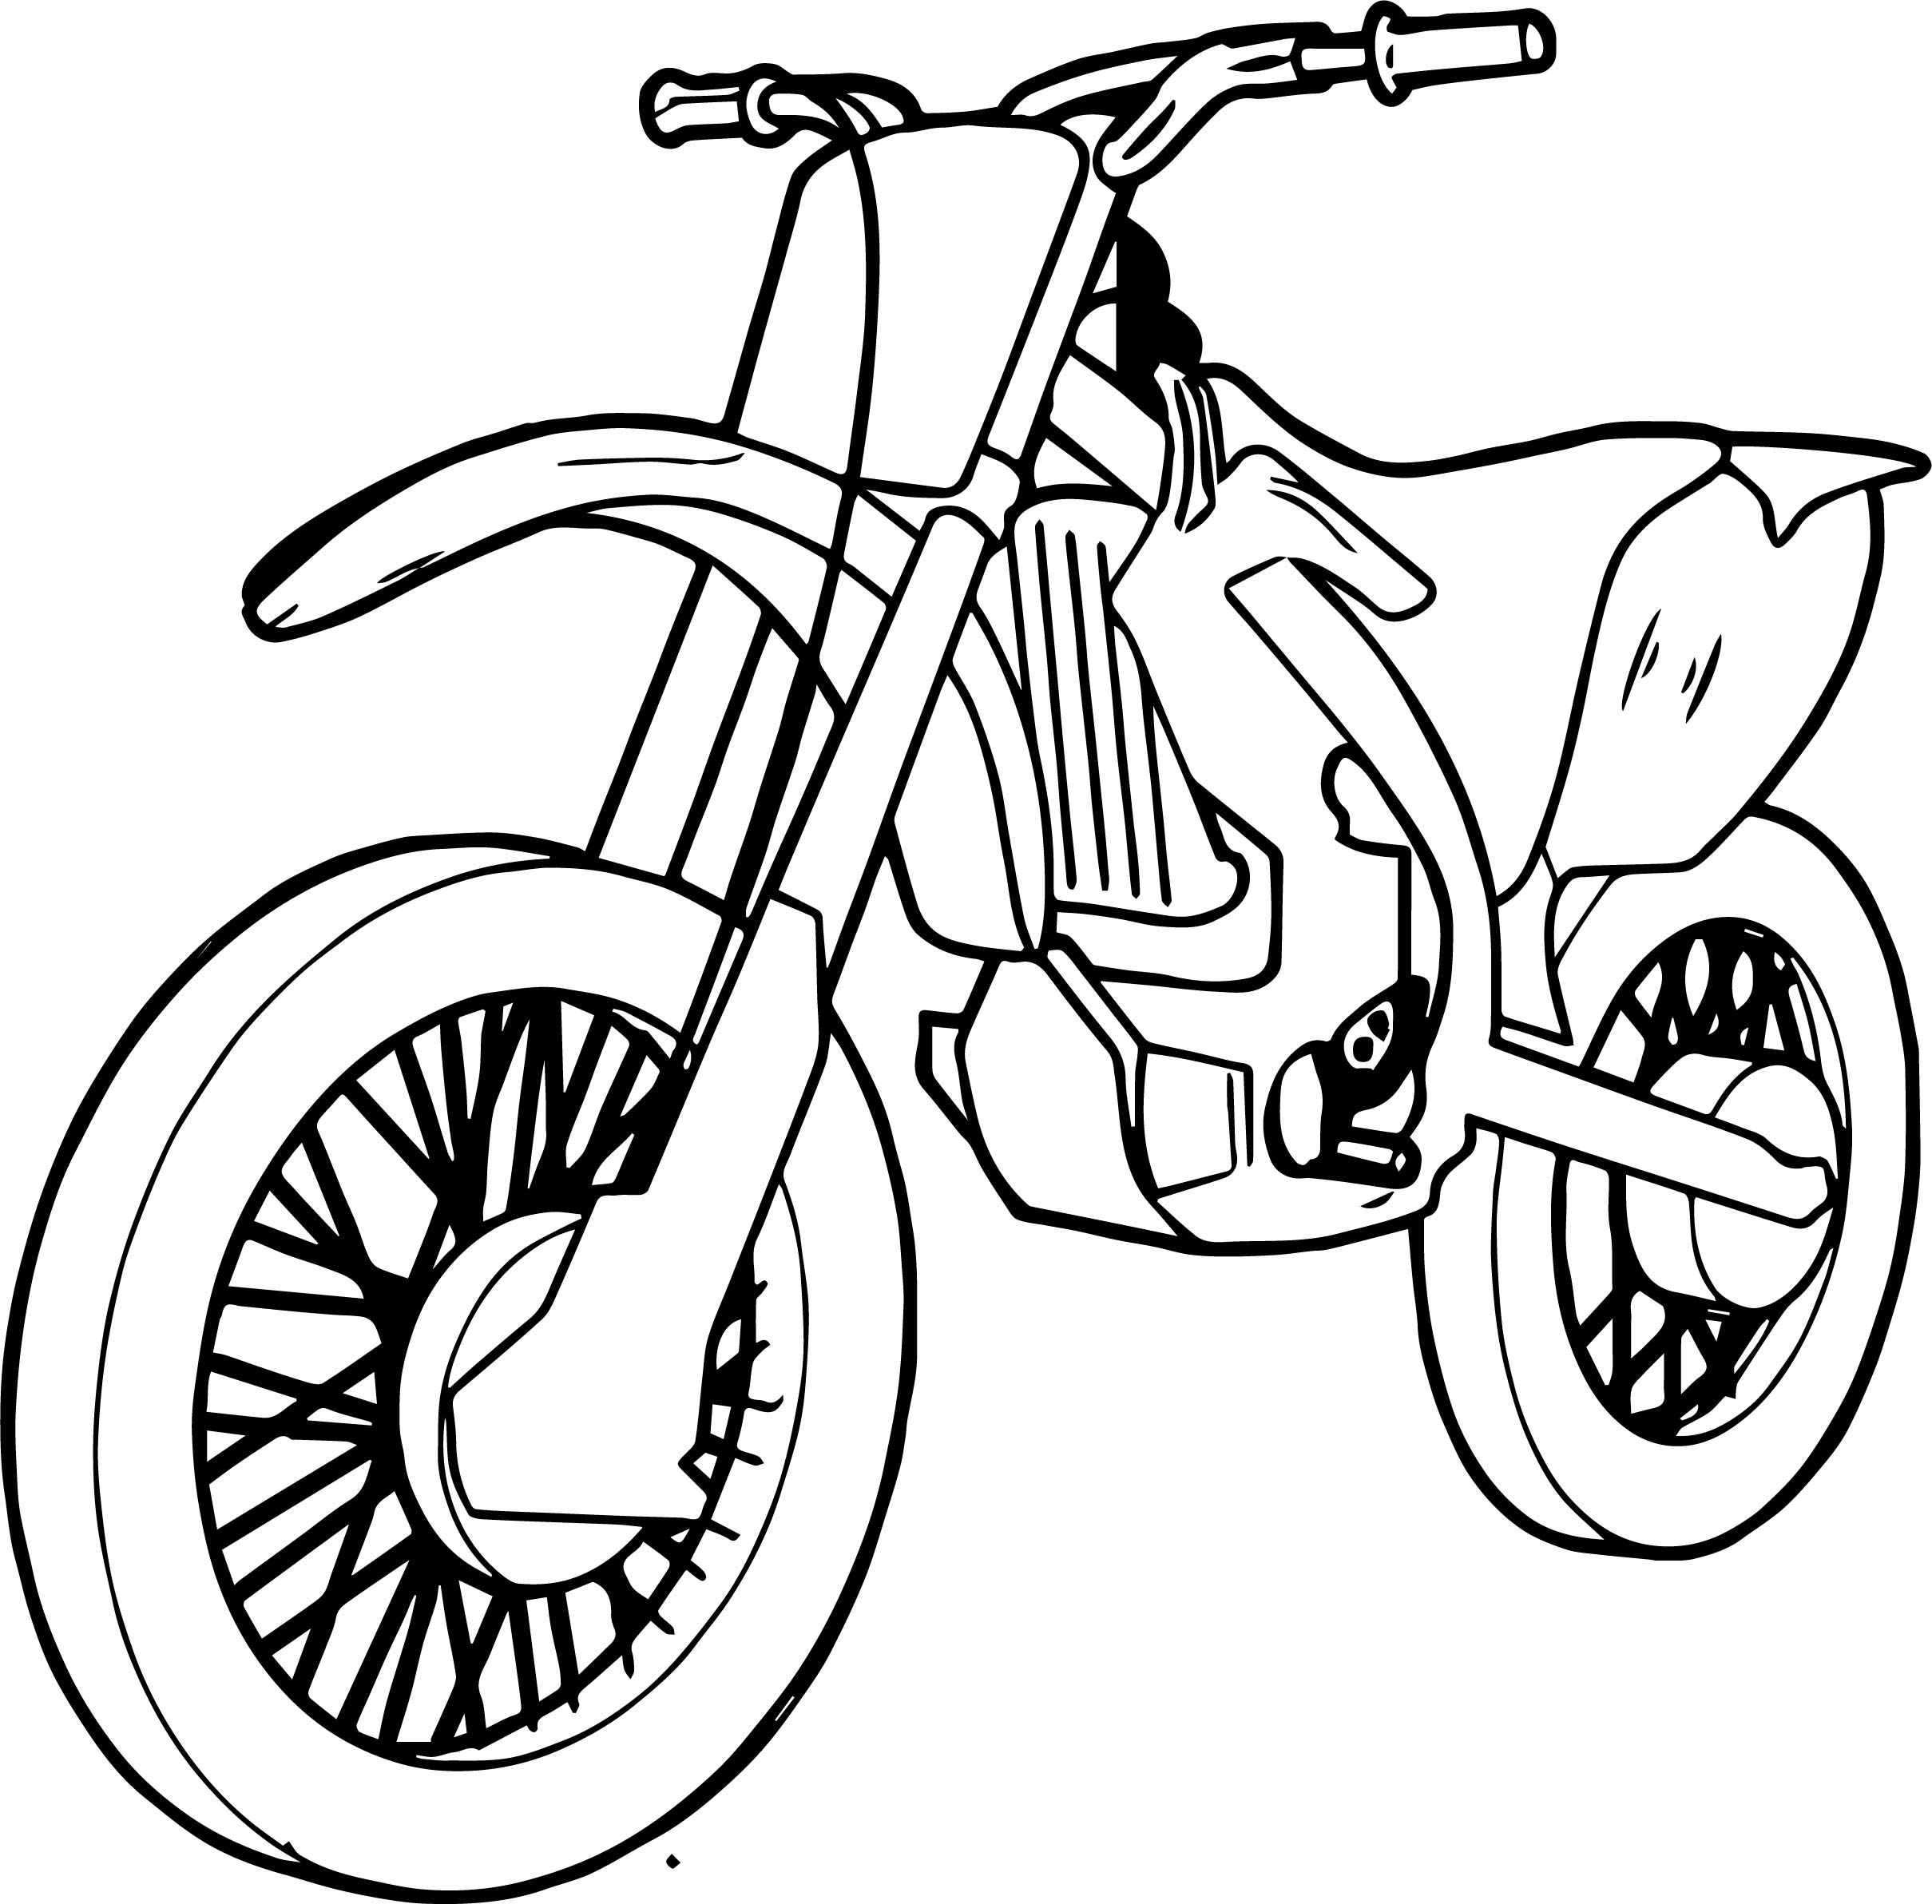 Old school motorcycle helmet coloring coloring pages for Motorcycle helmet coloring pages